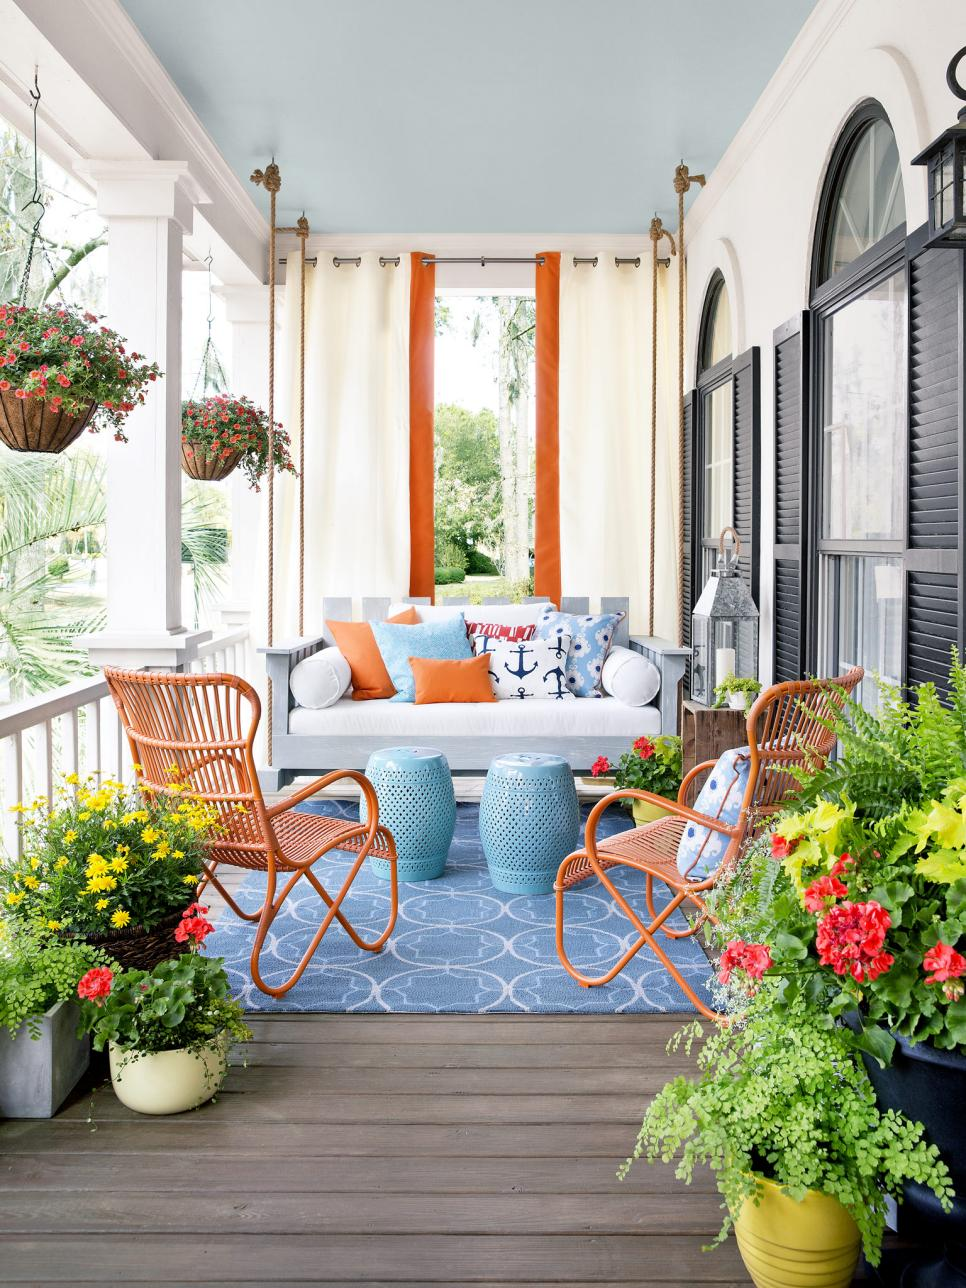 Porch design and decorating ideas hgtv for Pictures of decorated small patios